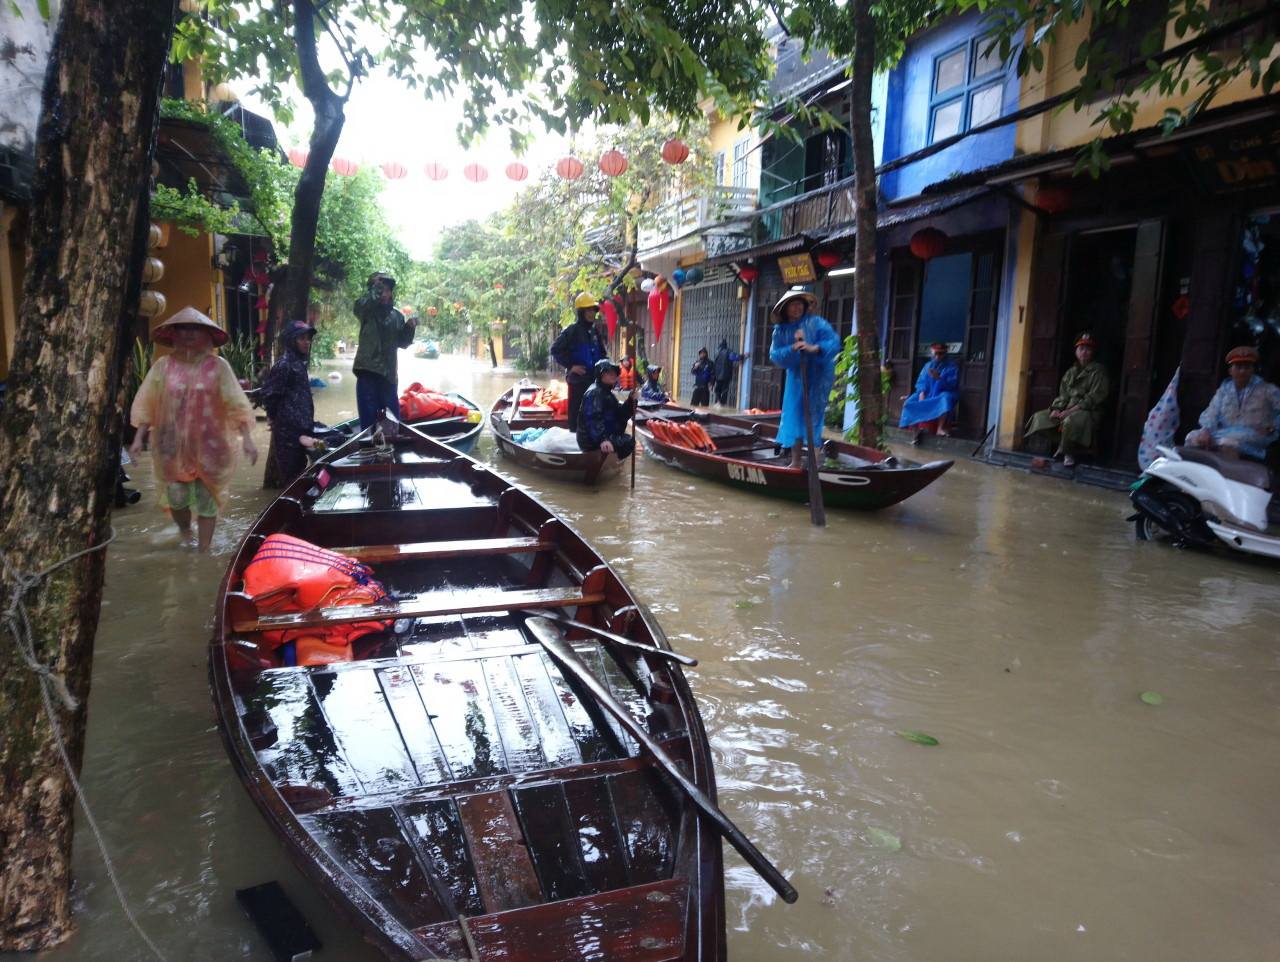 Soaked to the bone in Hoi An